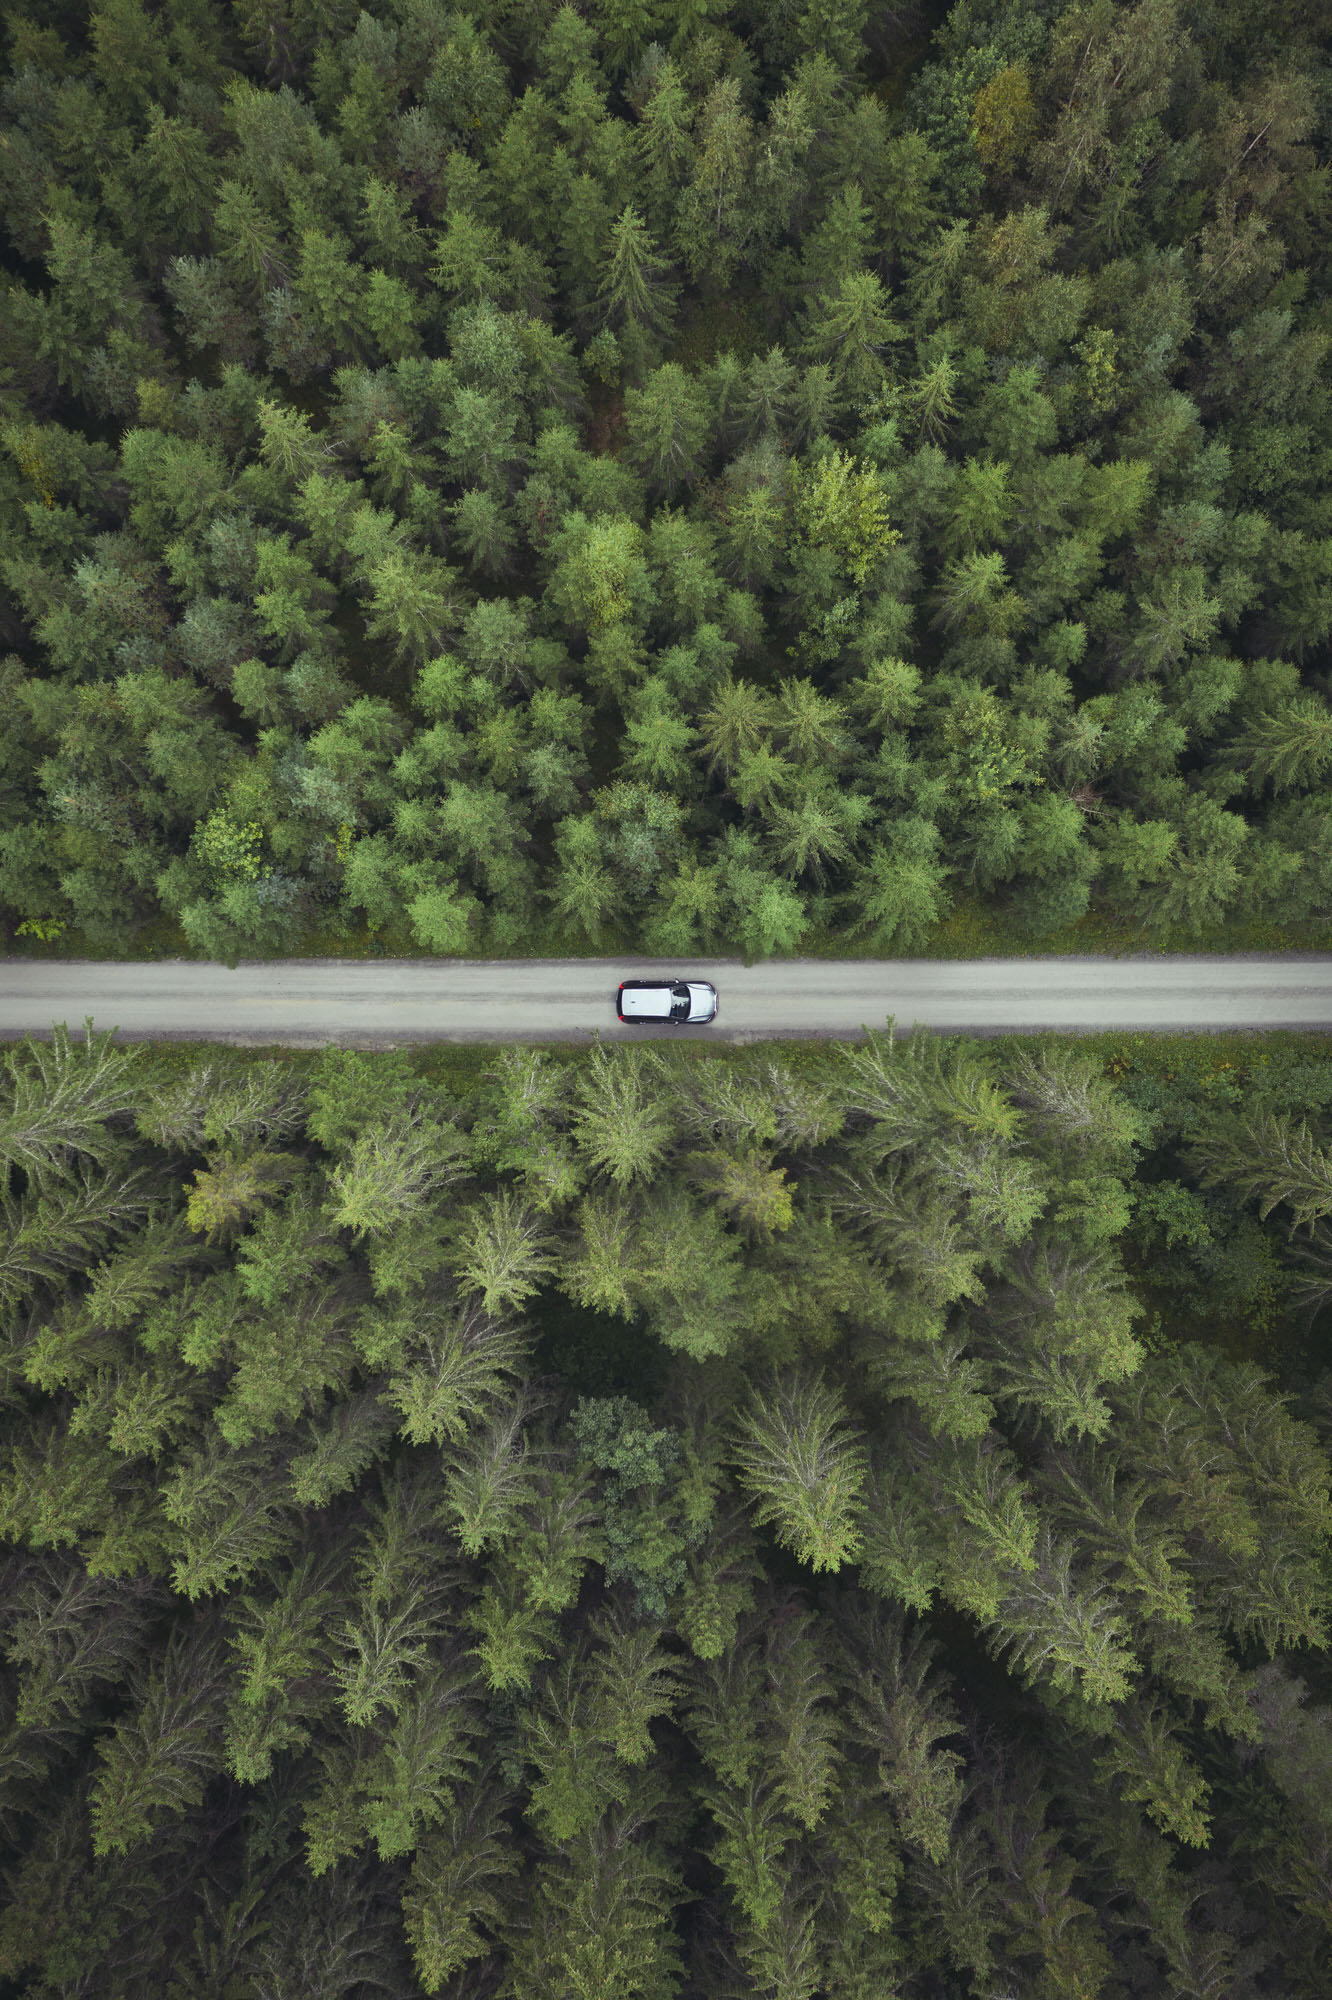 Drone shot of Volvo XC40 in the forest of Hamar, Norway